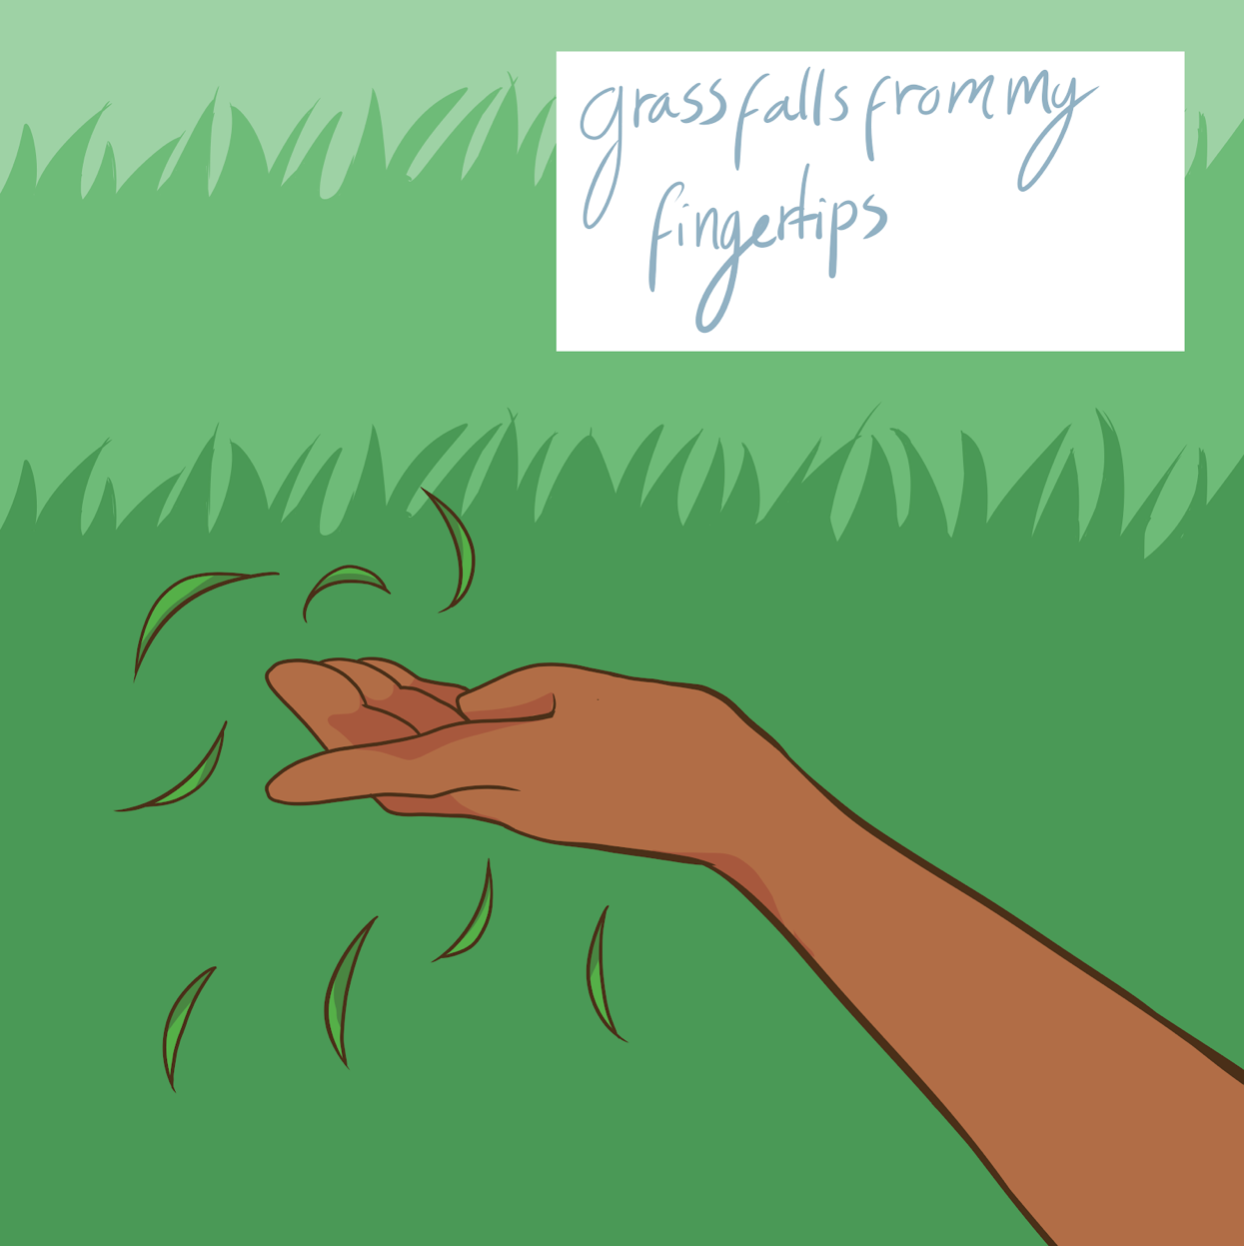 Grass falls from my fingertips